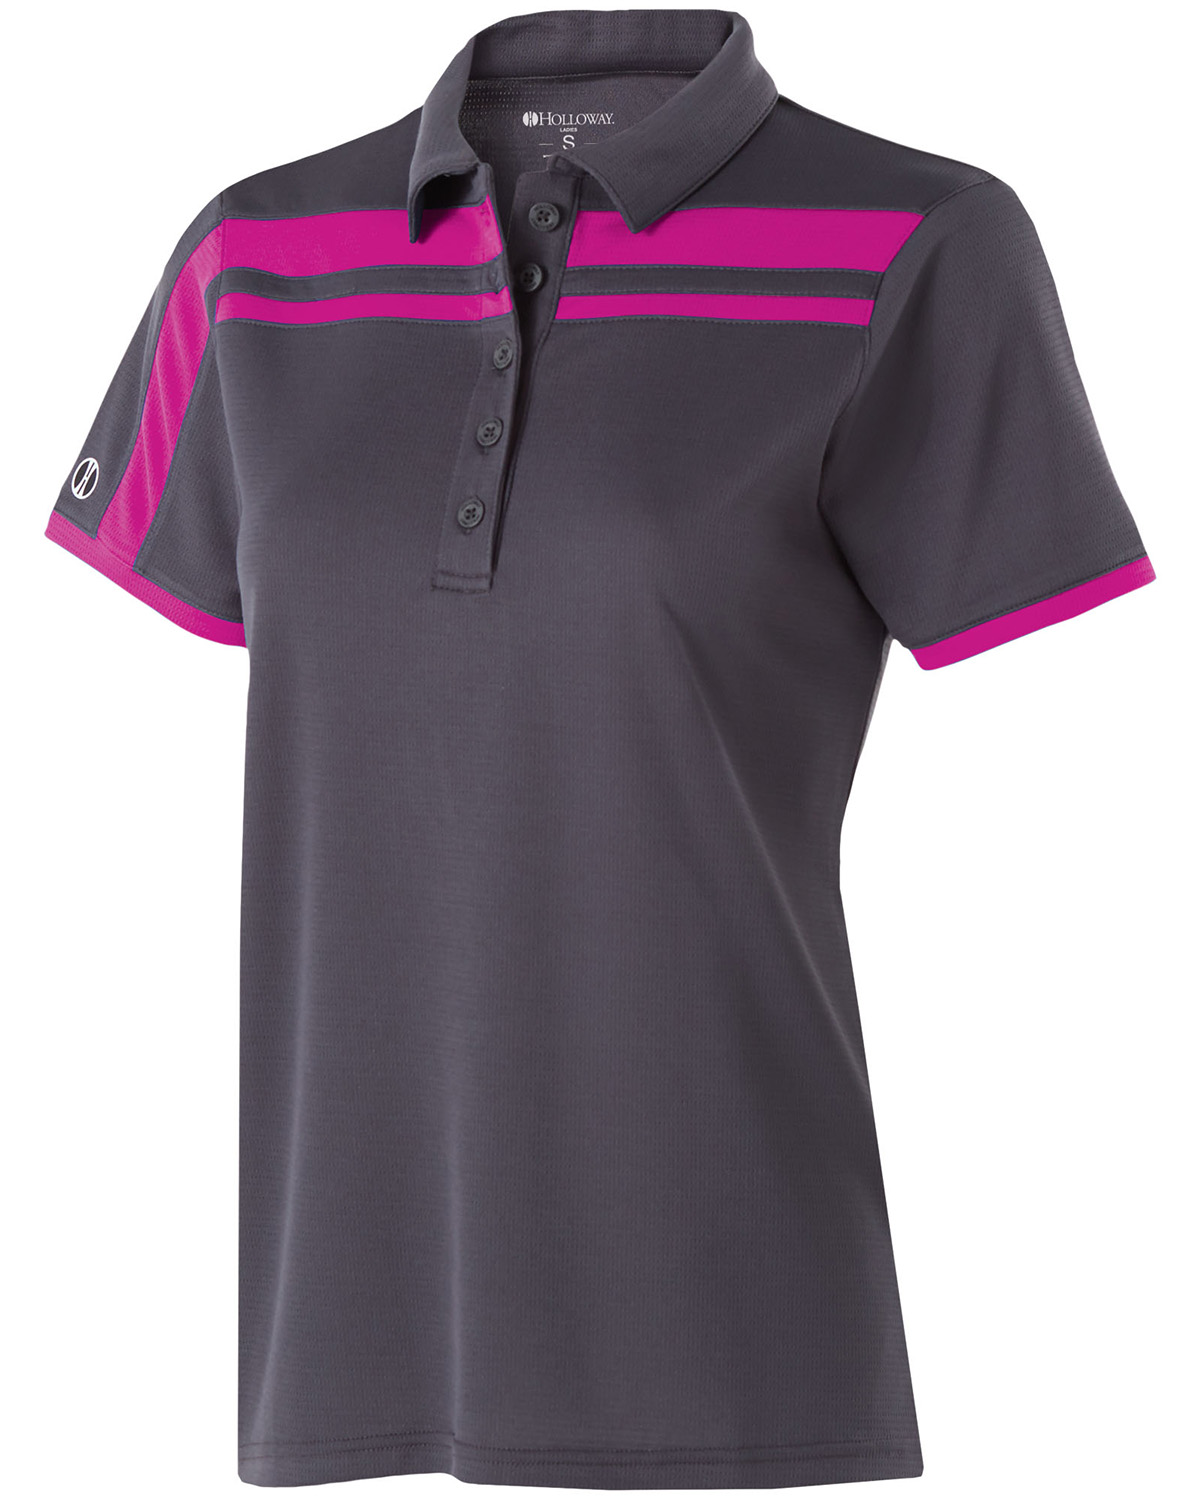 Holloway 222387 - Ladies' Polyester Closed-Hole Charge Polo